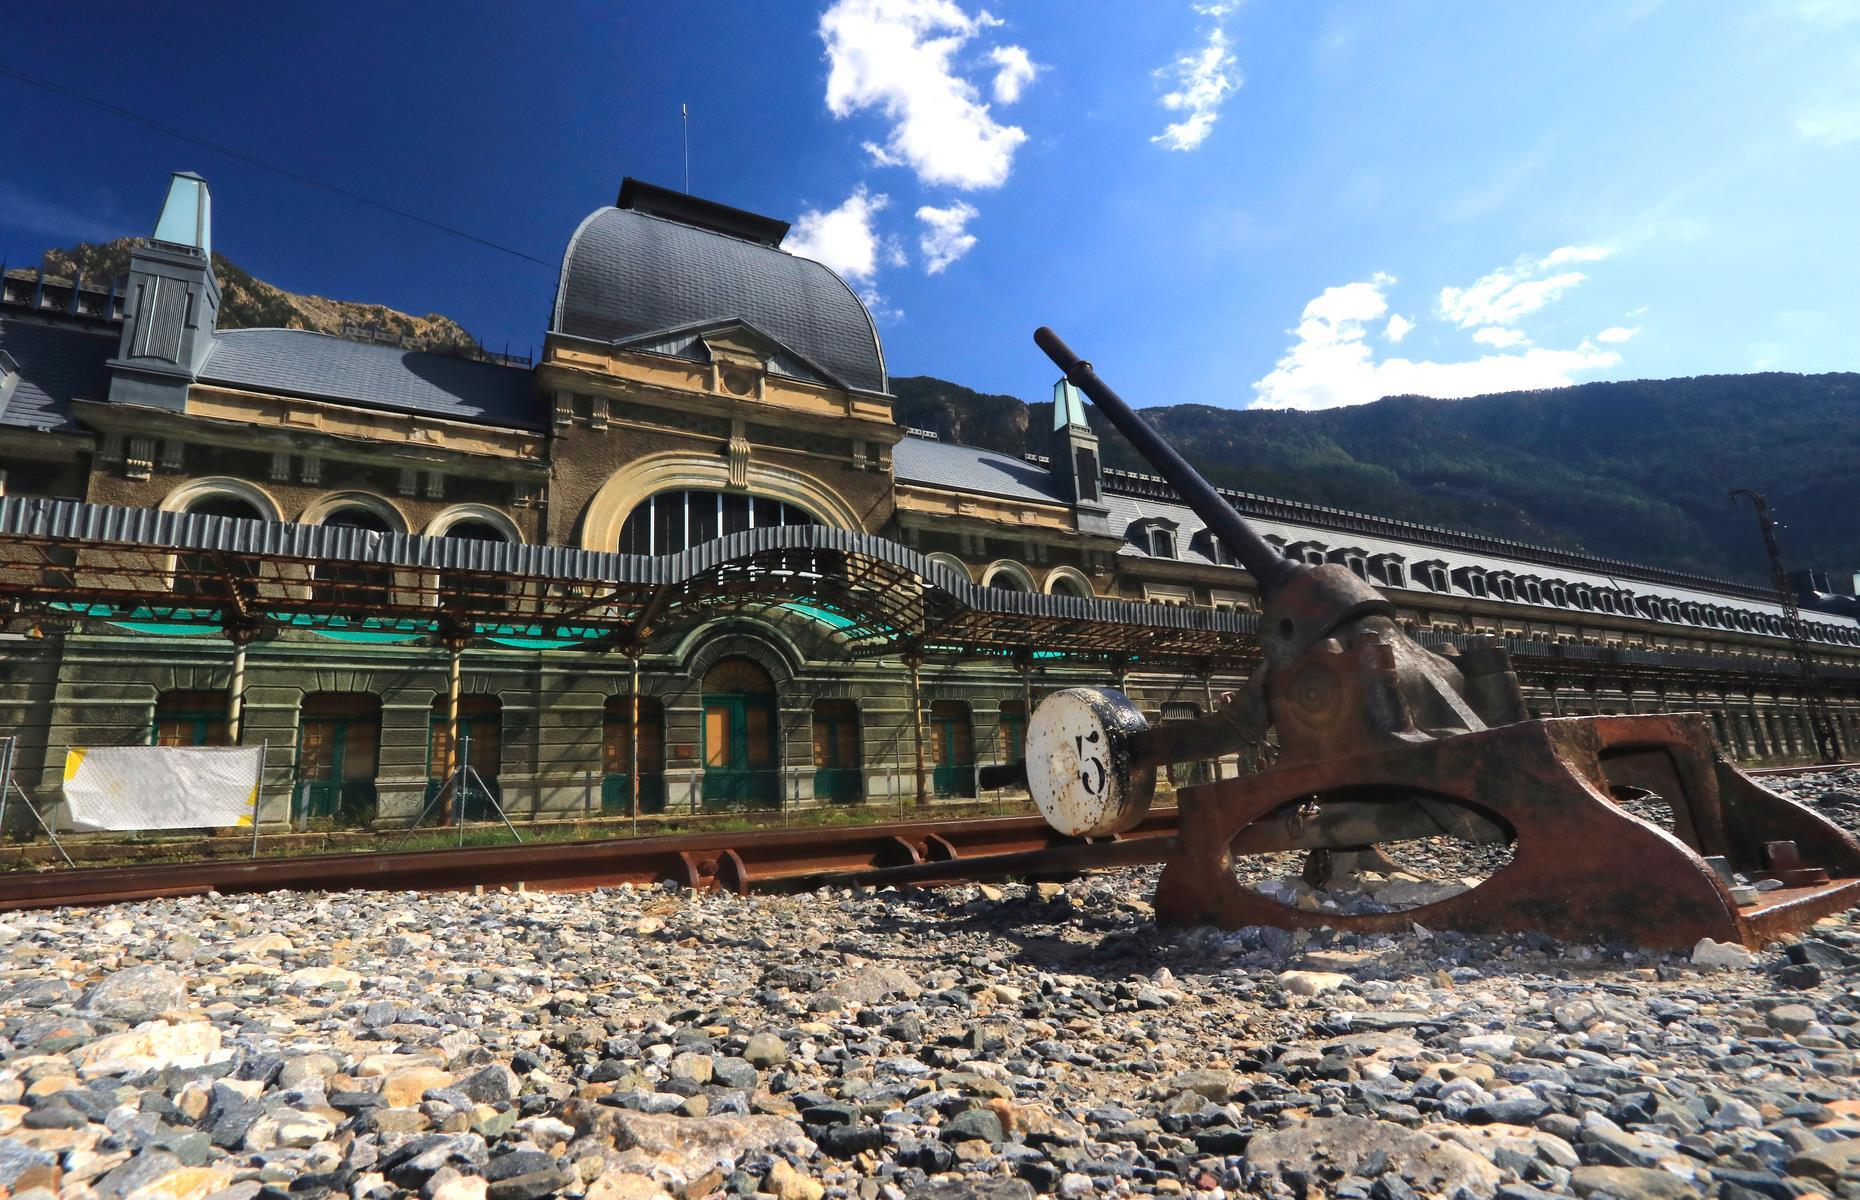 Slide 33 of 33: Today the haunting ruins of the decrepit station and its beautiful mountainous setting have become a popular tourist destination, withguided tours of the site available with social distancing rules in place. It was also recently bought by the local government in Aragon and major plans are afoot to restore Canfranc to its former glory, in the form of a luxury hotel with a working railway. Now discoverthese photos of the world's coolest metro stations